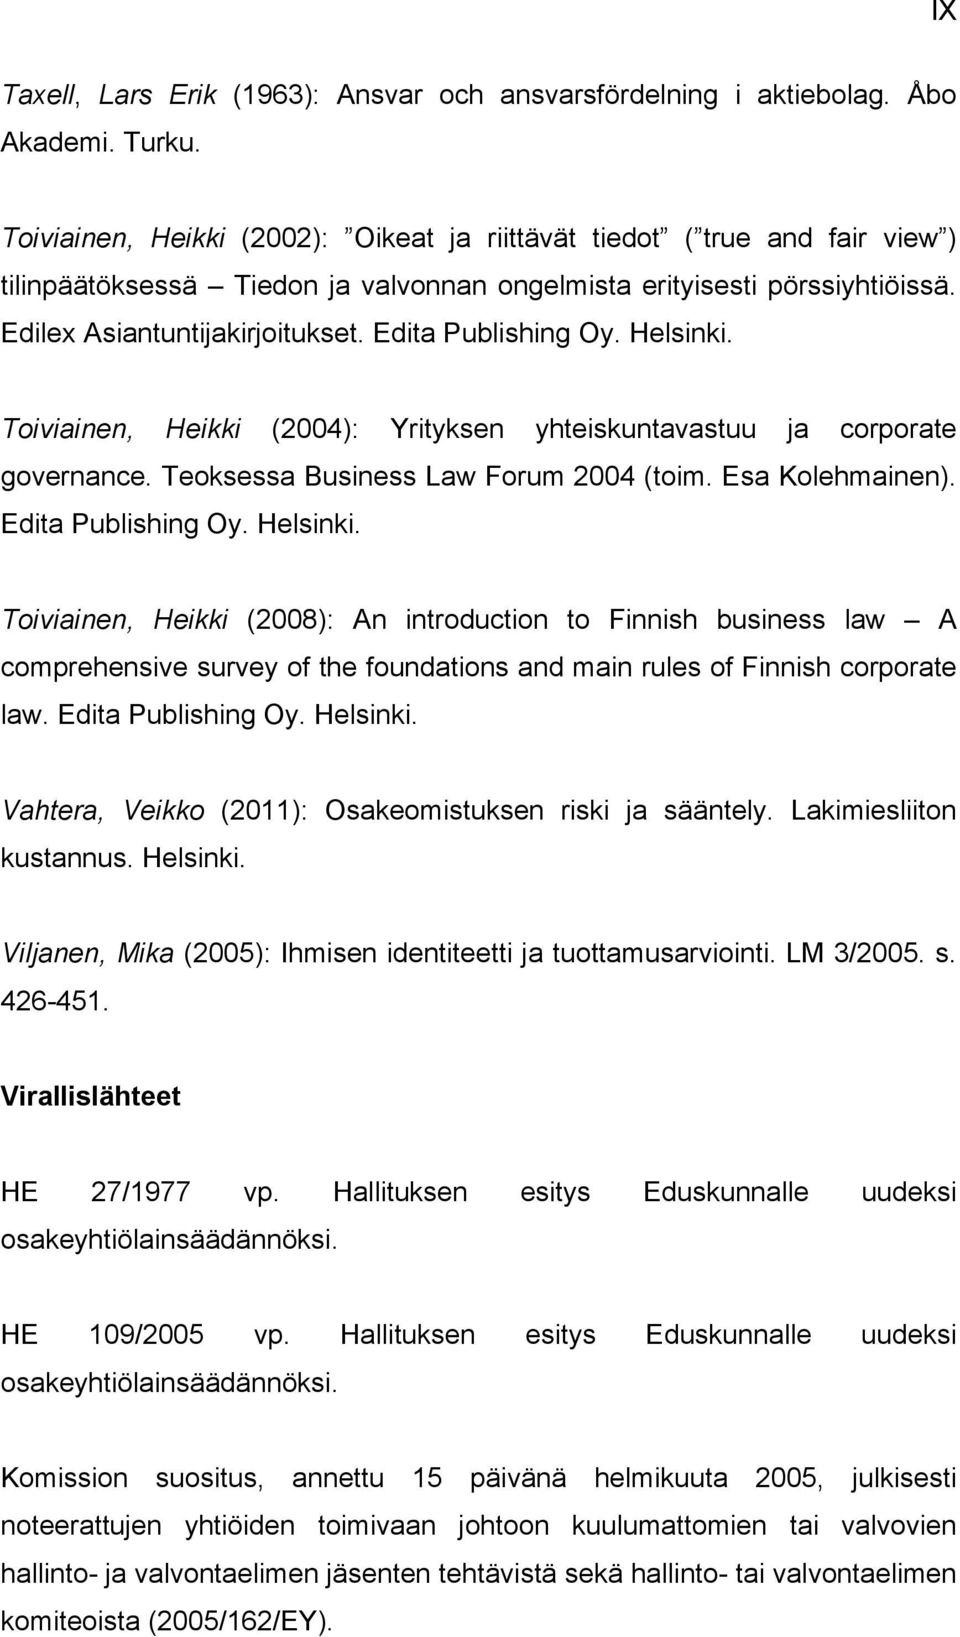 Edita Publishing Oy. Helsinki. Toiviainen, Heikki (2004): Yrityksen yhteiskuntavastuu ja corporate governance. Teoksessa Business Law Forum 2004 (toim. Esa Kolehmainen). Edita Publishing Oy. Helsinki. Toiviainen, Heikki (2008): An introduction to Finnish business law A comprehensive survey of the foundations and main rules of Finnish corporate law.